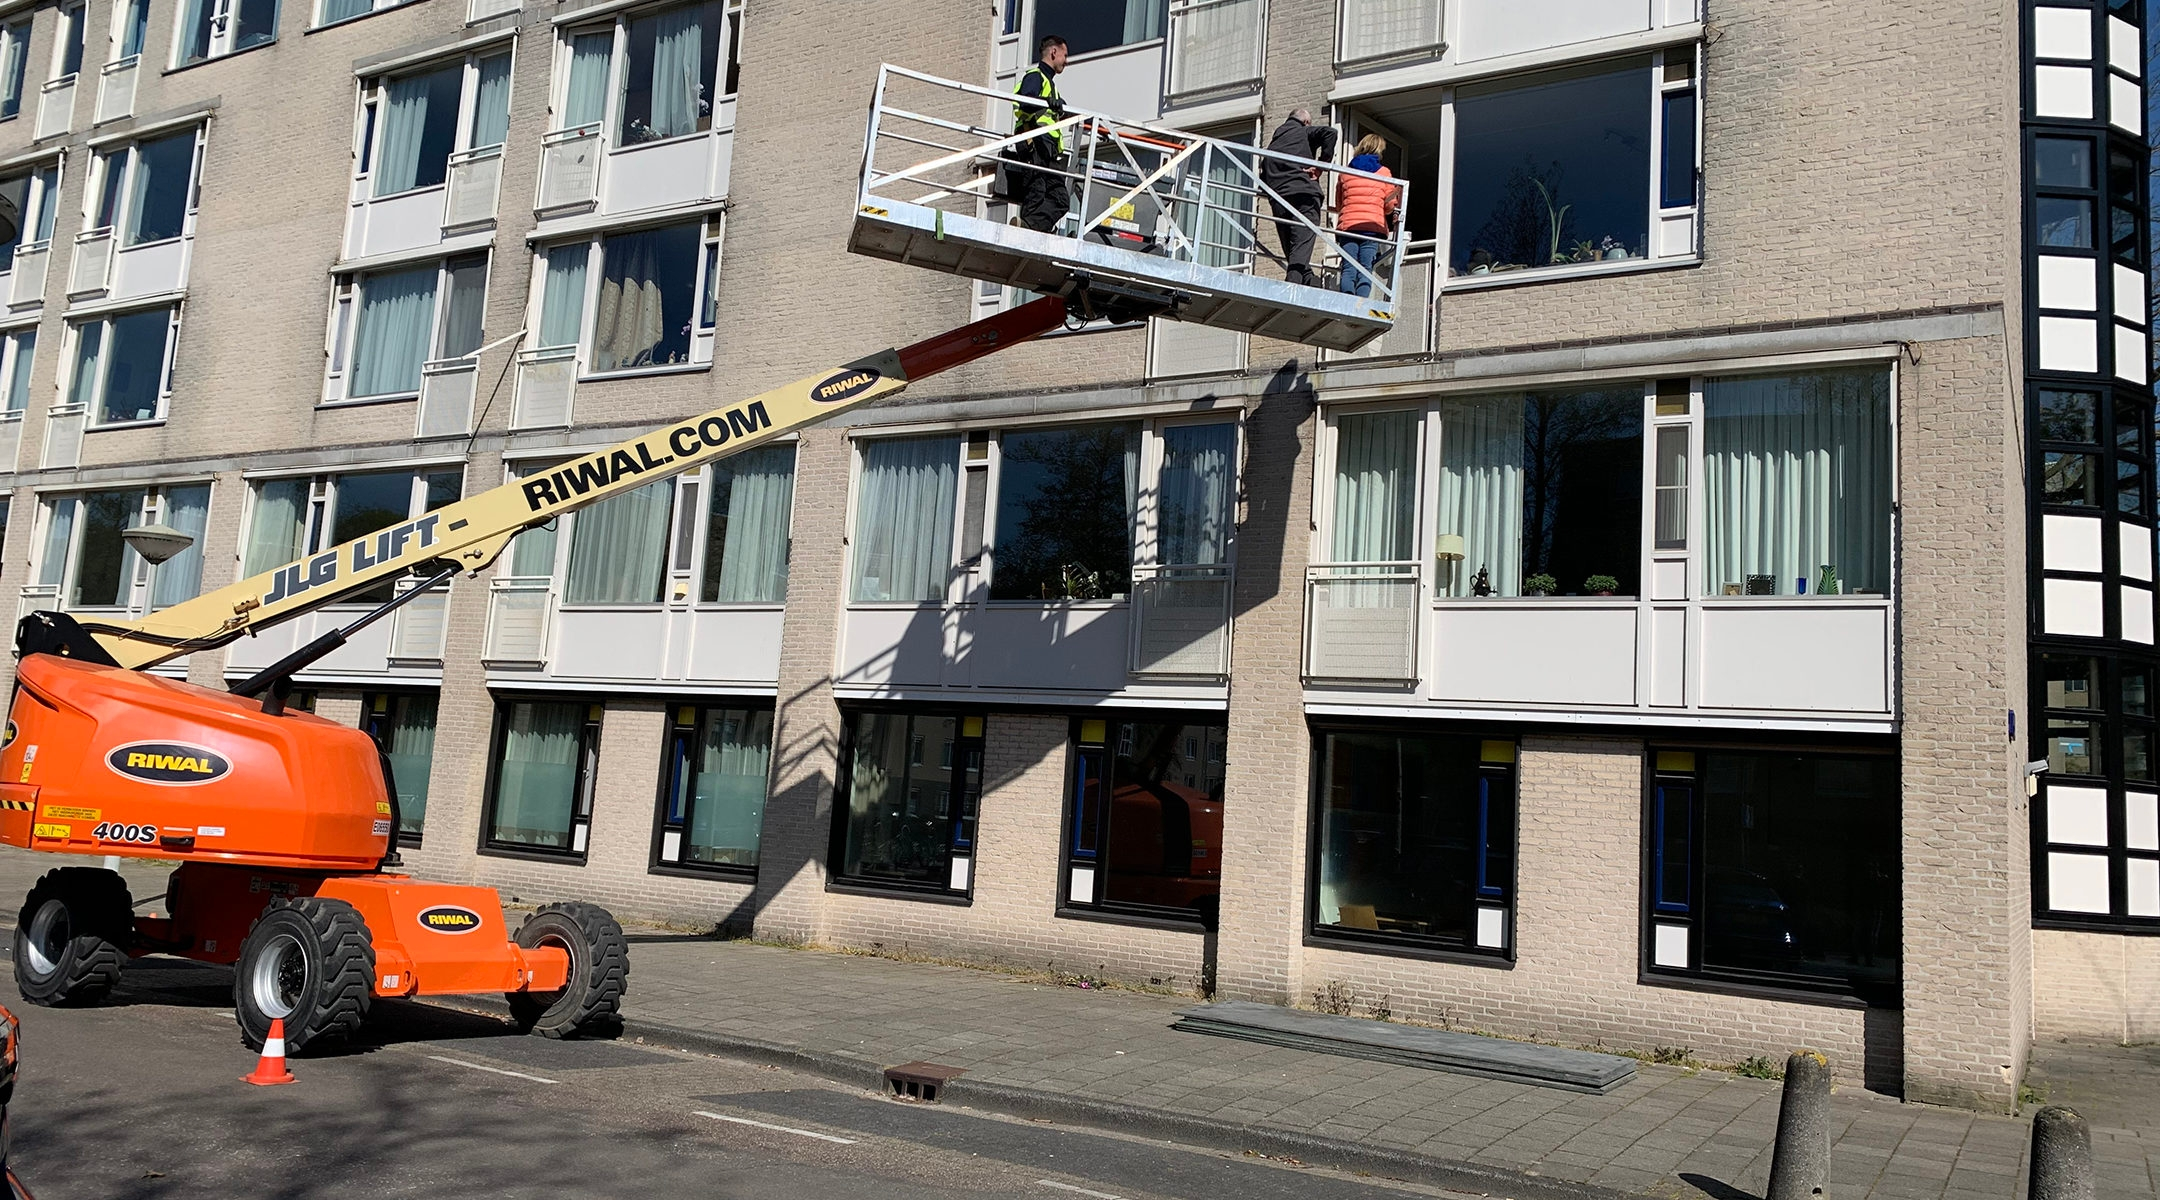 Relatives of Fieta Aussen getting ready to meet her from a crane outside the window of her Jewish nursing home in Amsterdam, the Netherlands on April 15, 2020. (Courtesy of Riwal Holding Group)